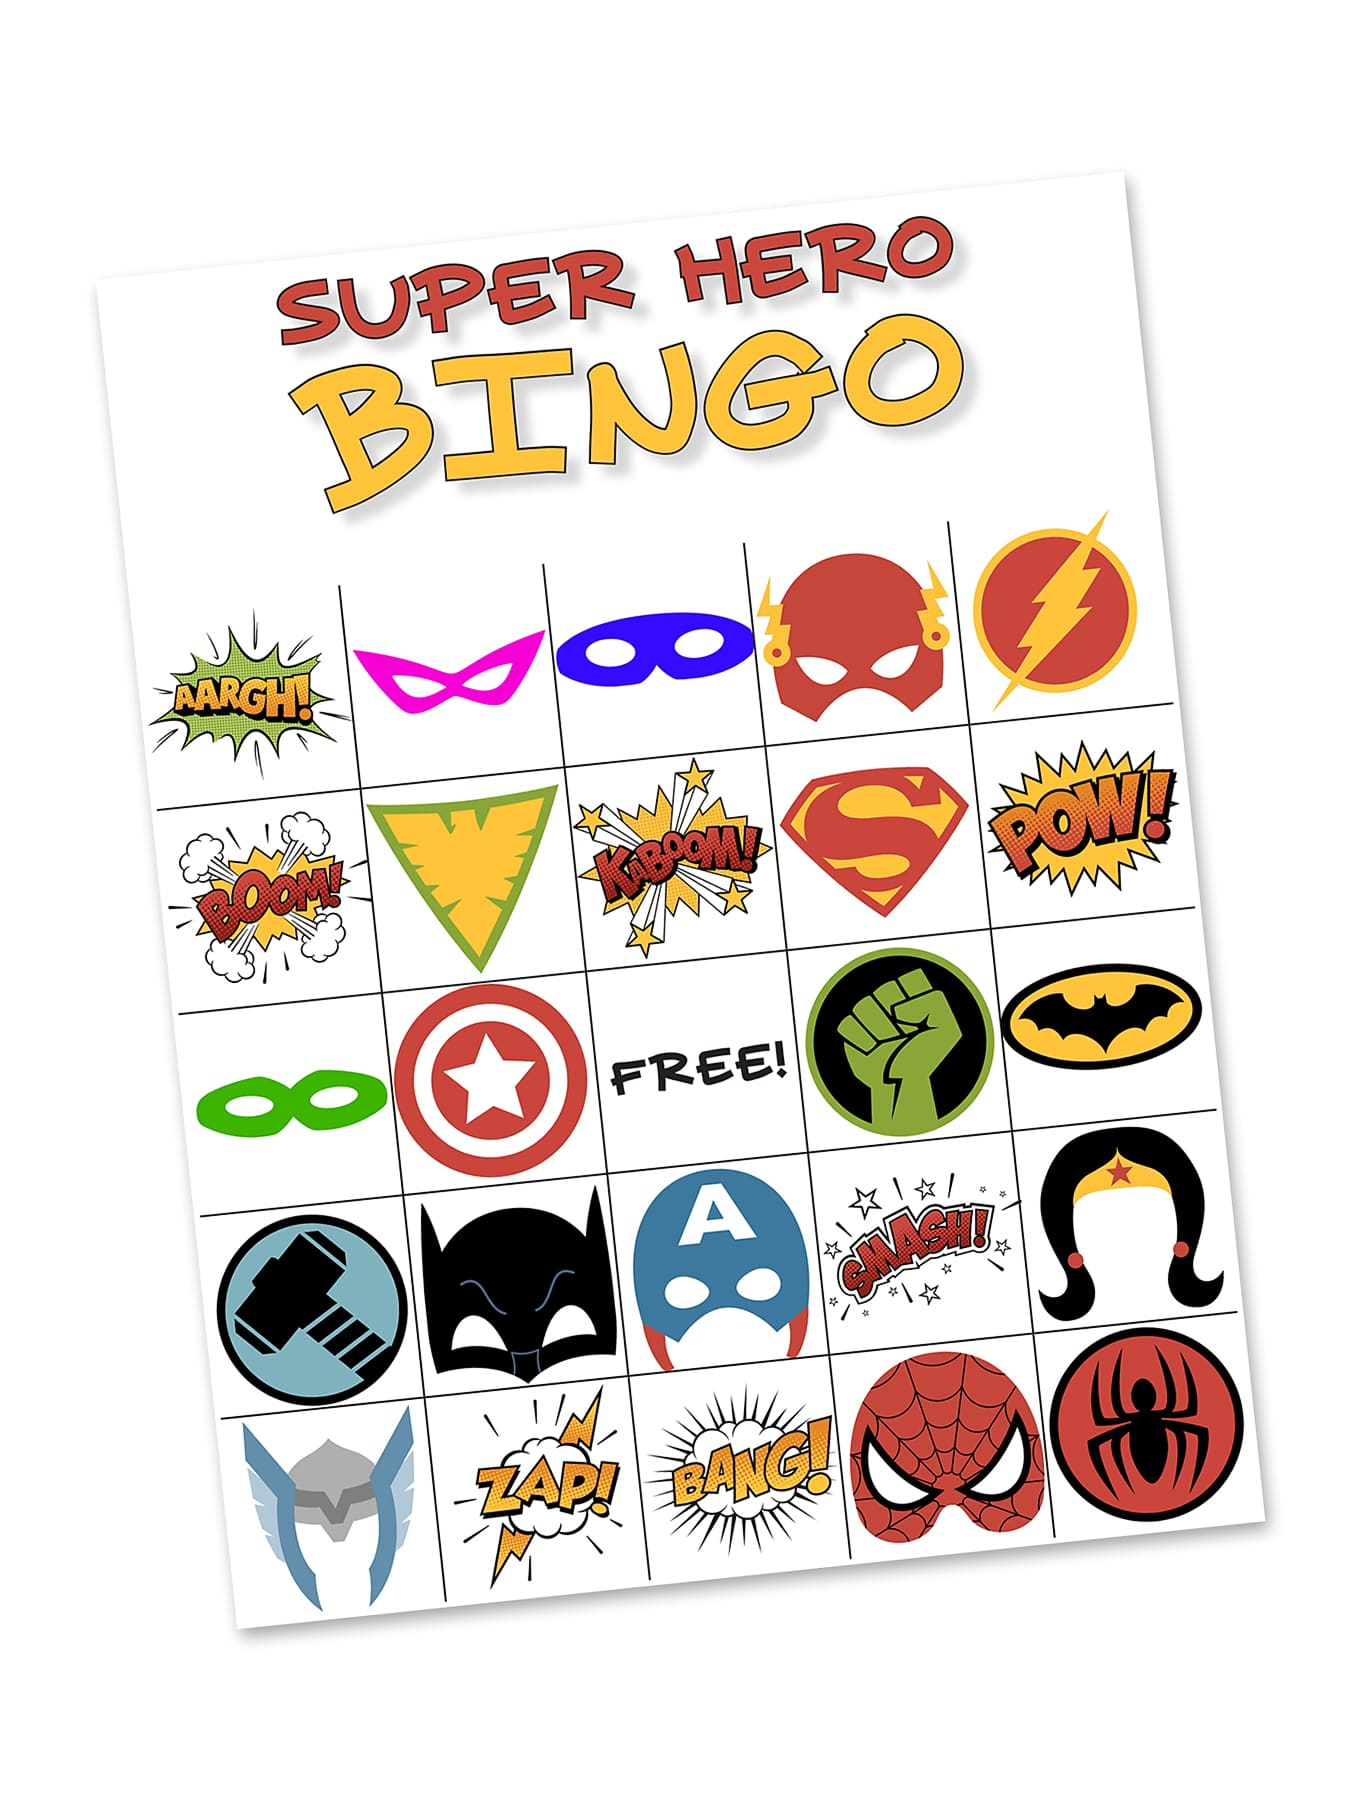 photo relating to Free Printable Superhero Photo Booth Props identify Cost-free Printable Tremendous Hero BINGO Celebration